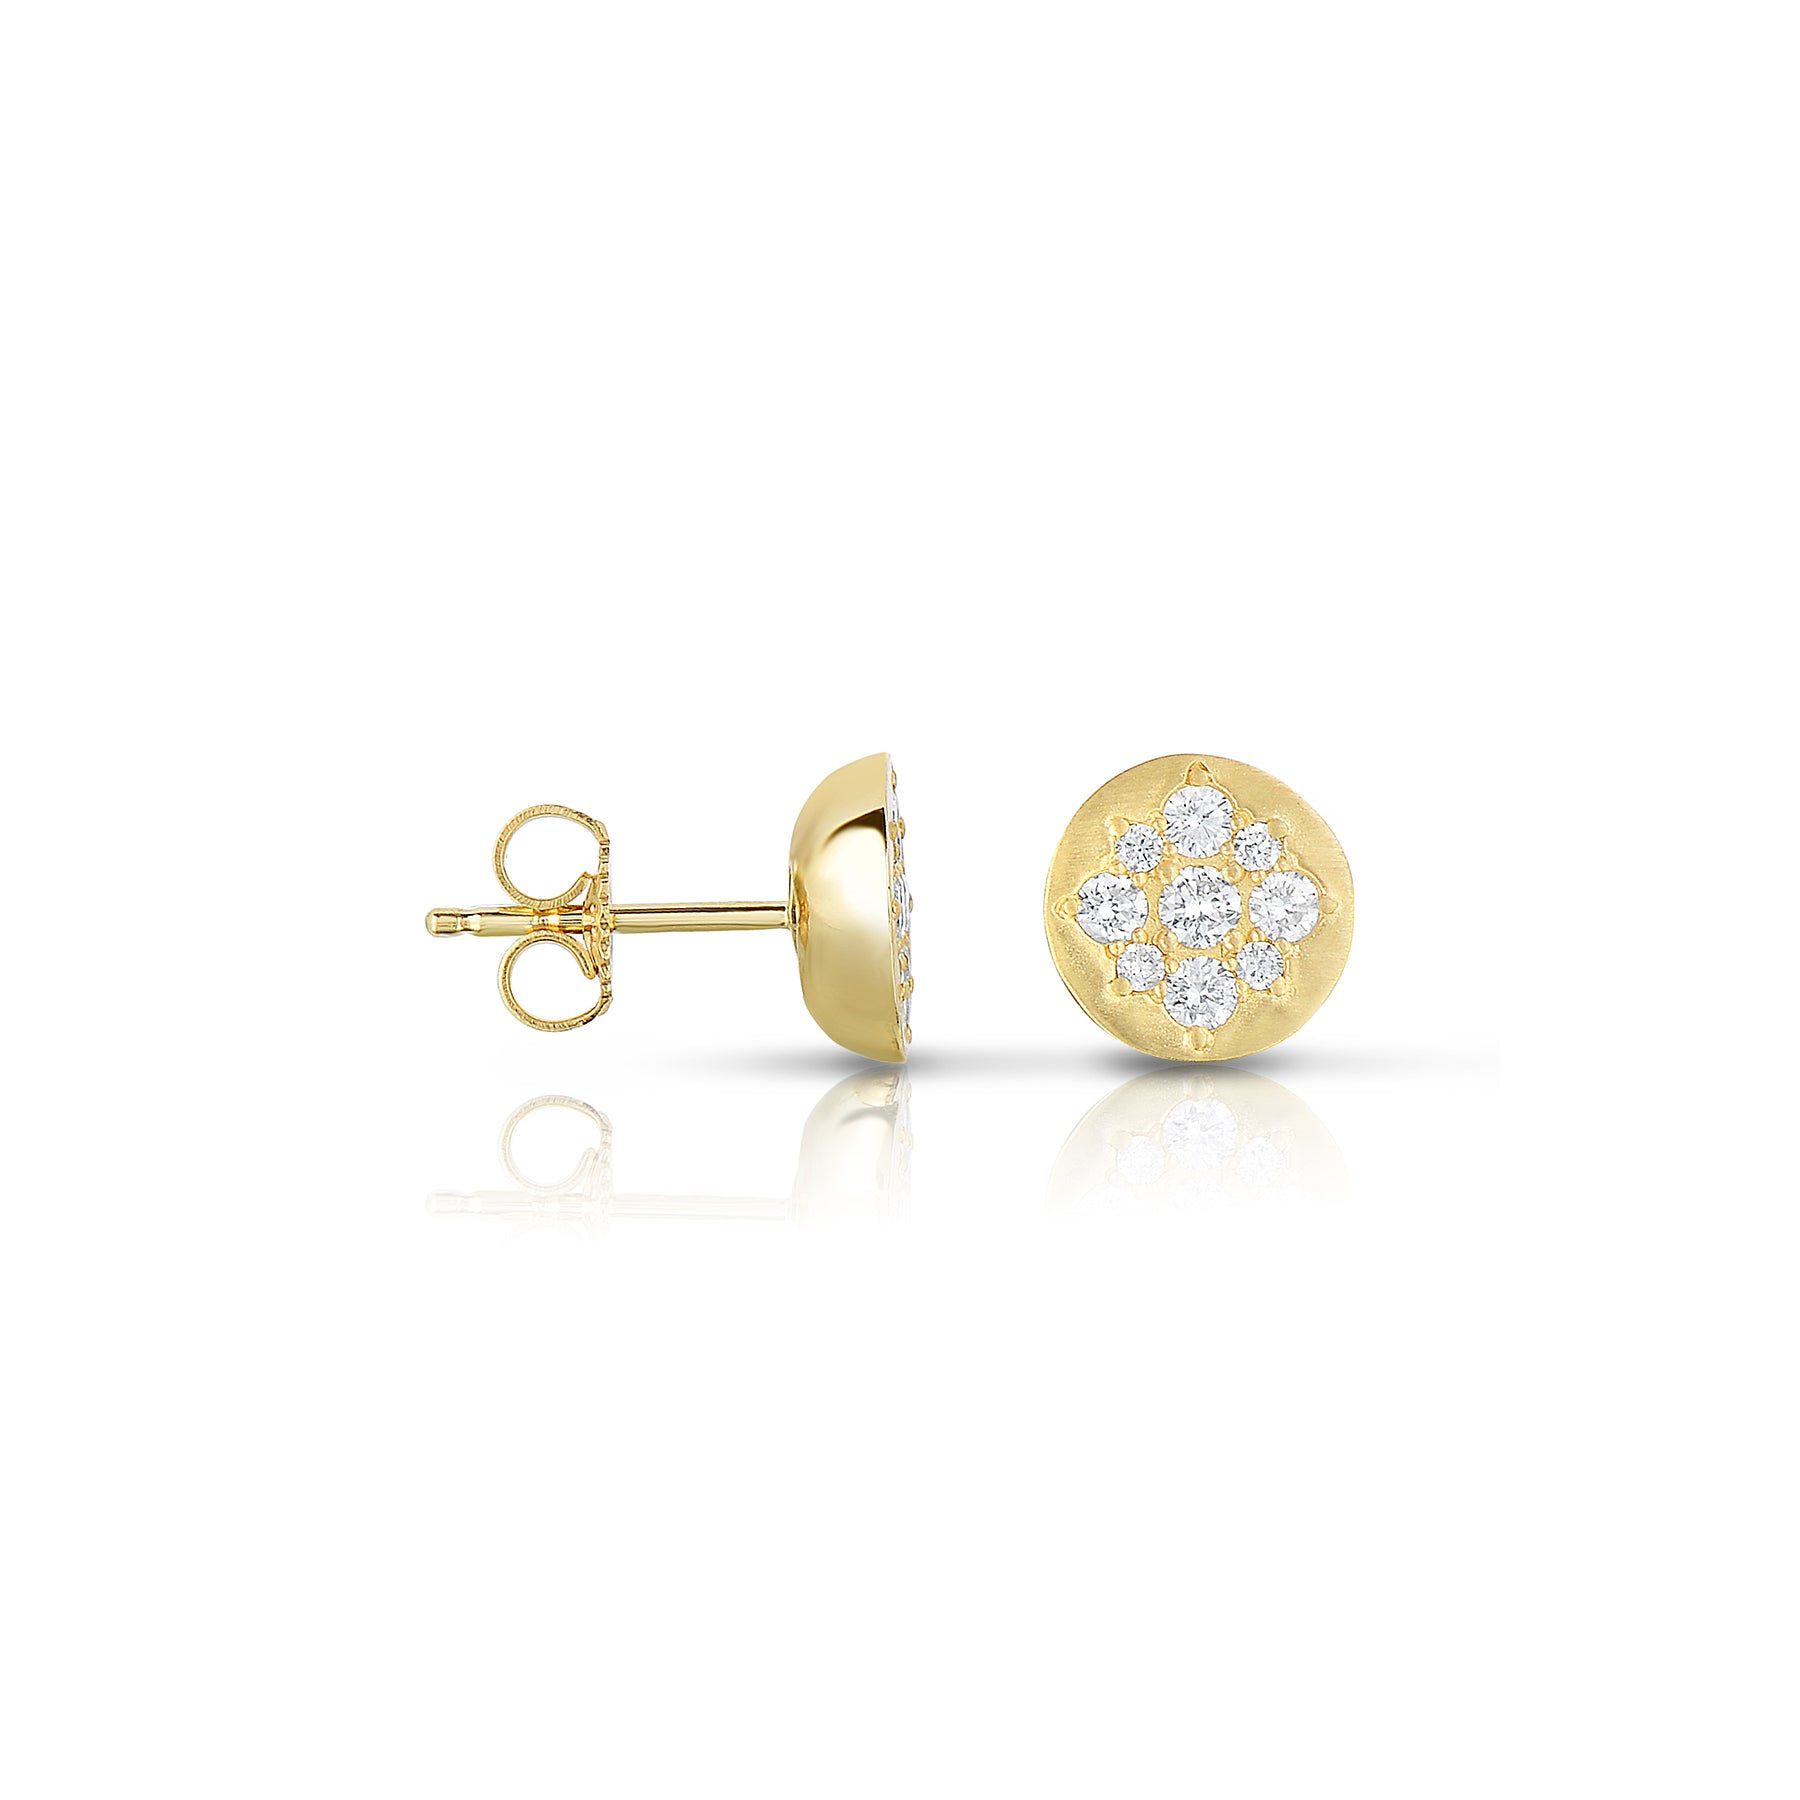 Matte Finish Diamond Design Stud Earrings, 14K Yellow Gold